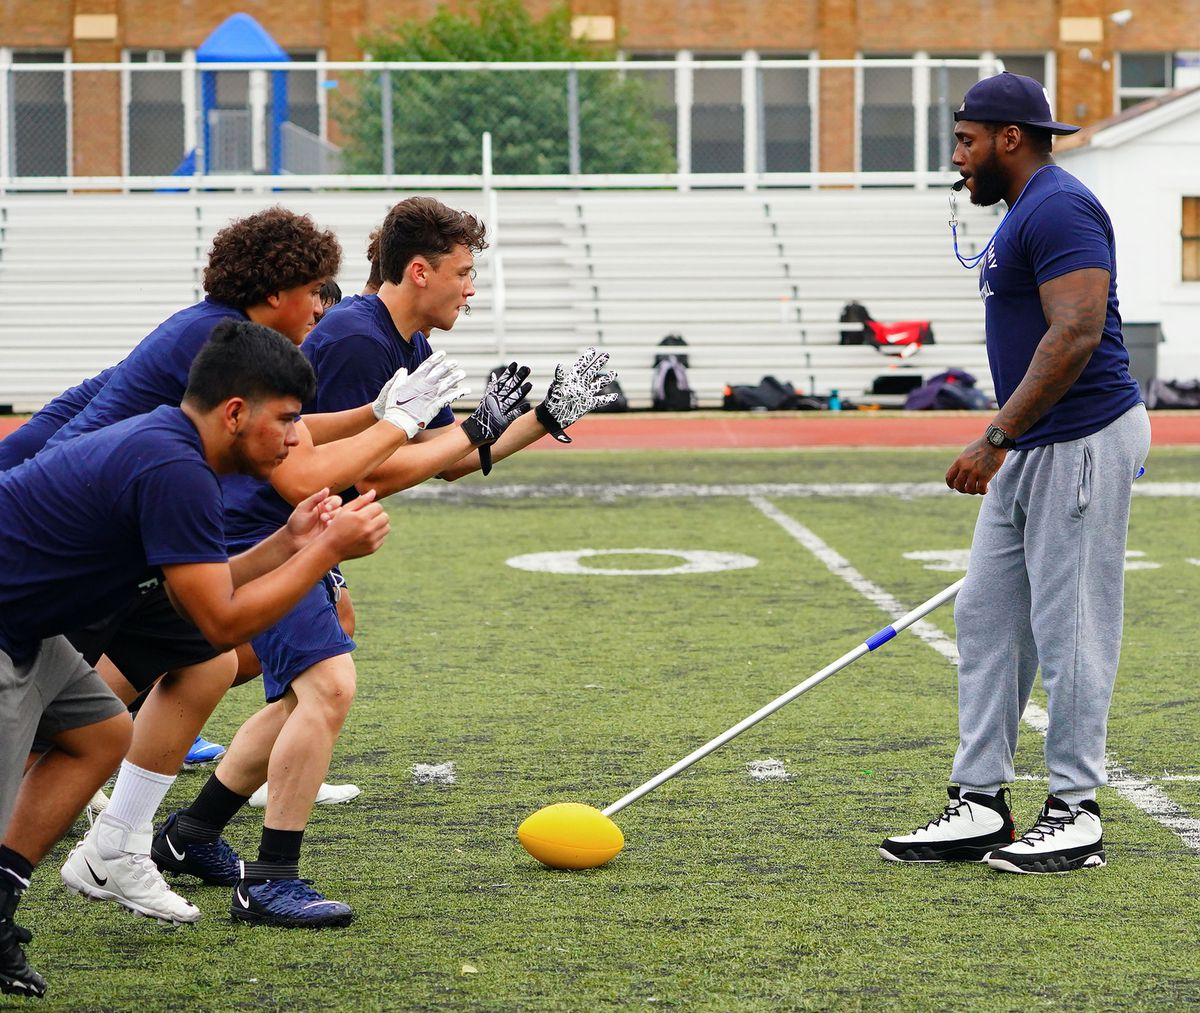 Chicago Academy coach Anthony Dotson runs a linemen drill at football practice.